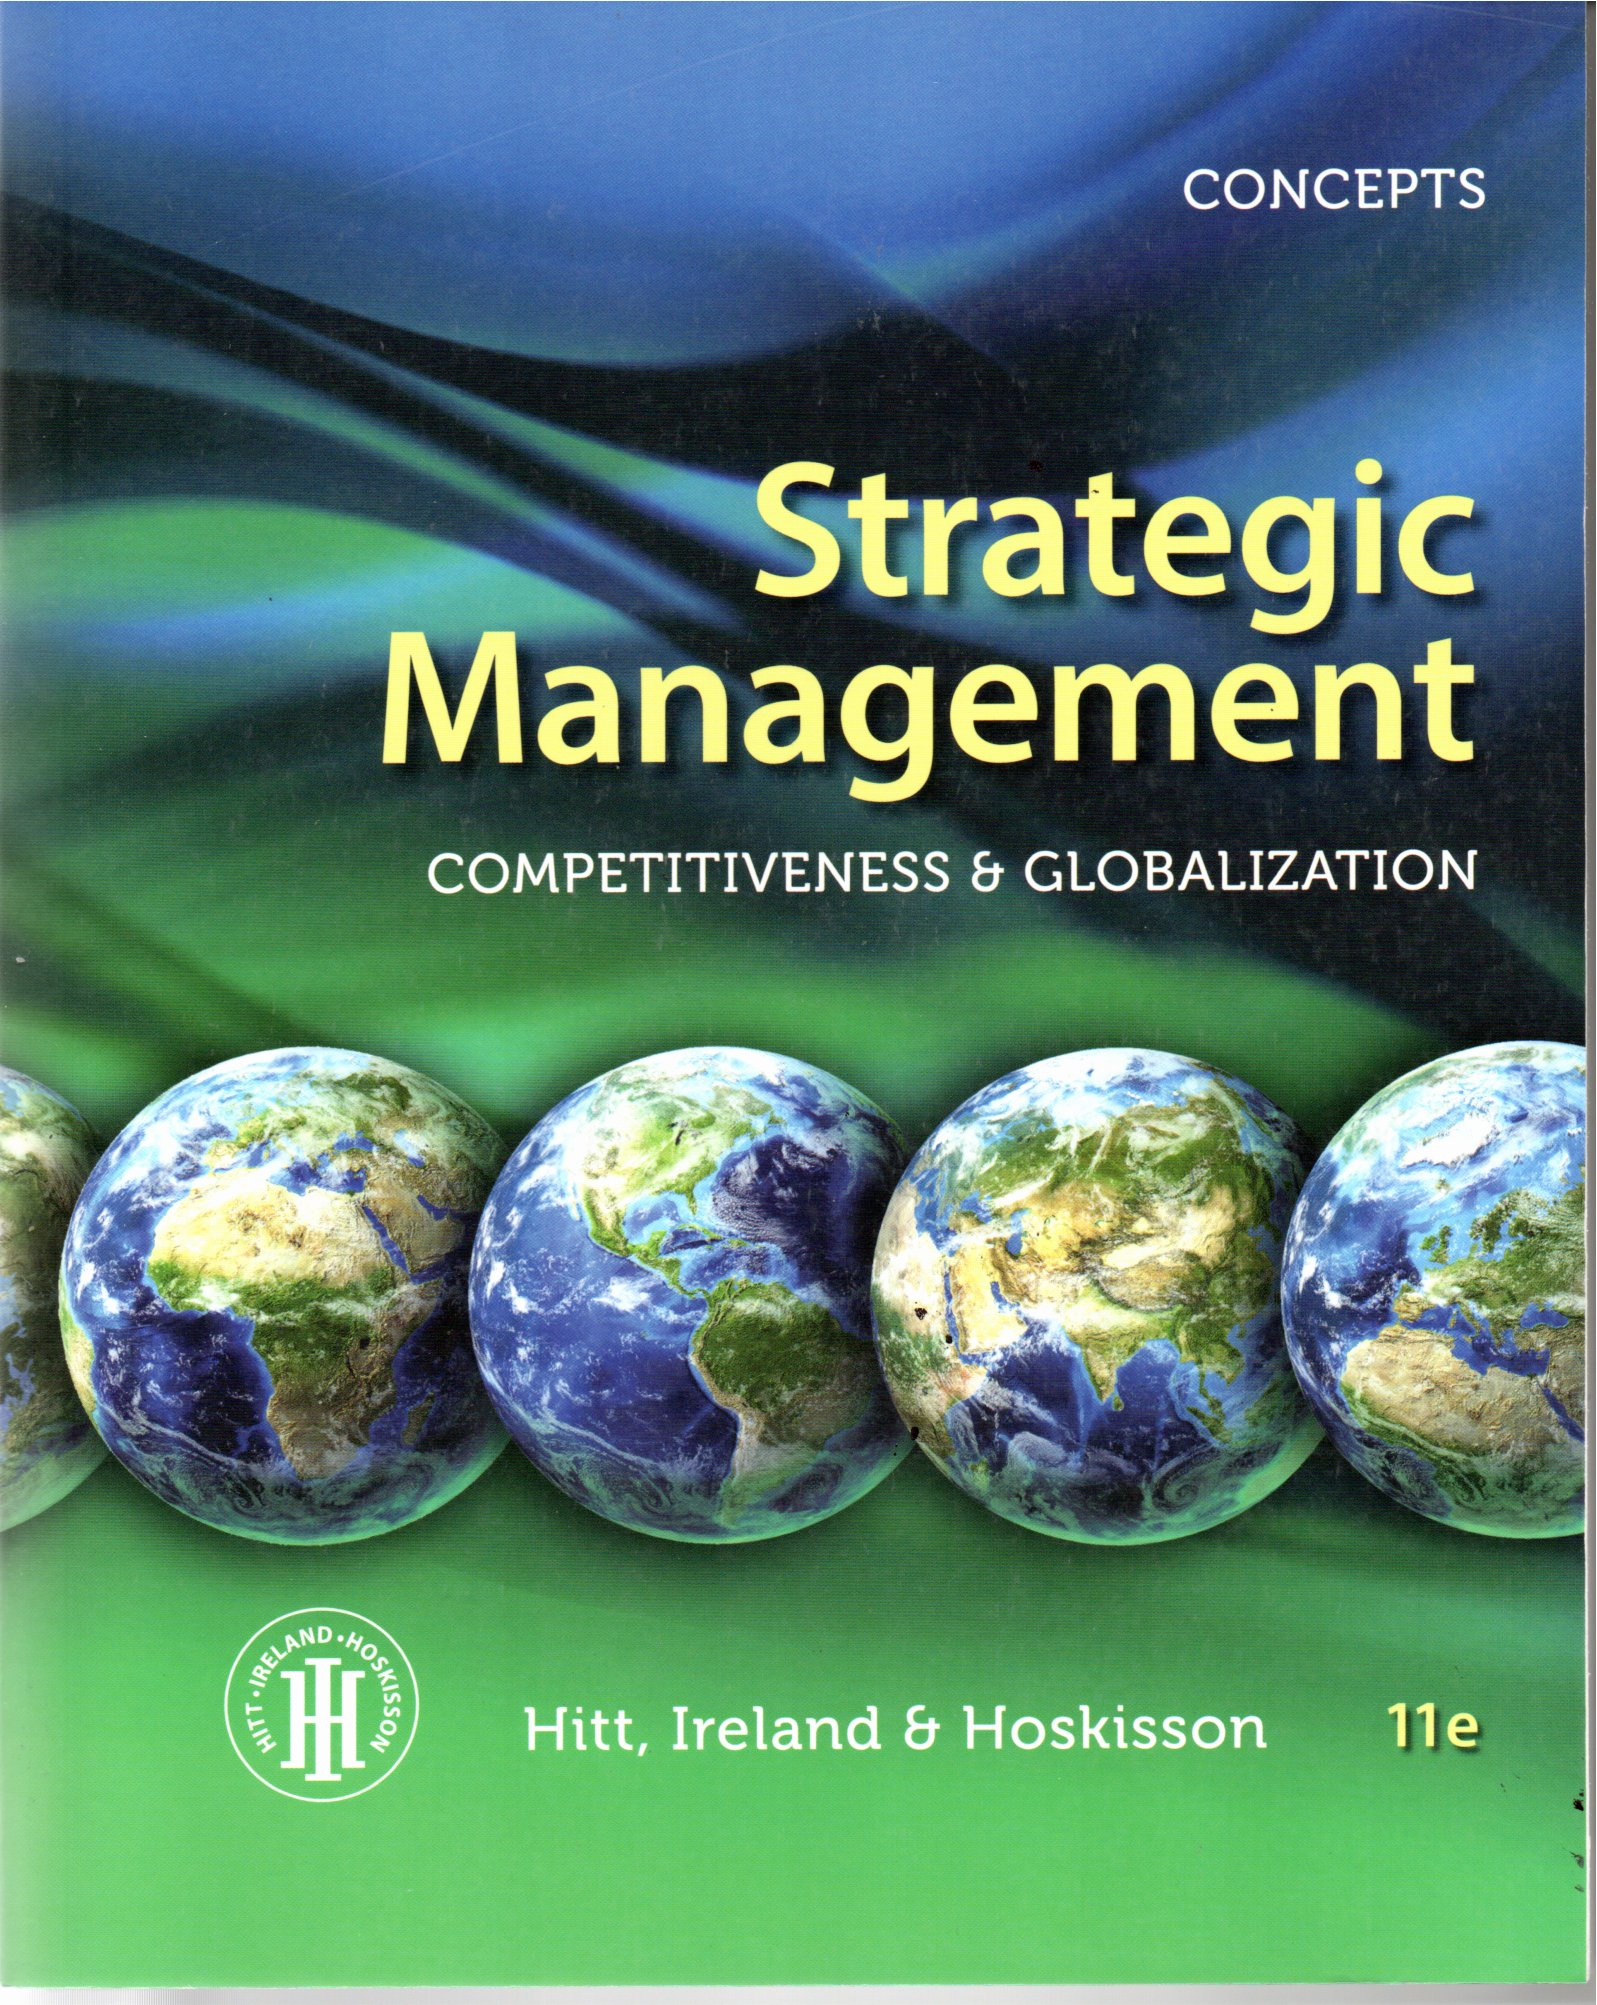 Strategic management competitiveness & globalization 11e / Michael A. Hitt